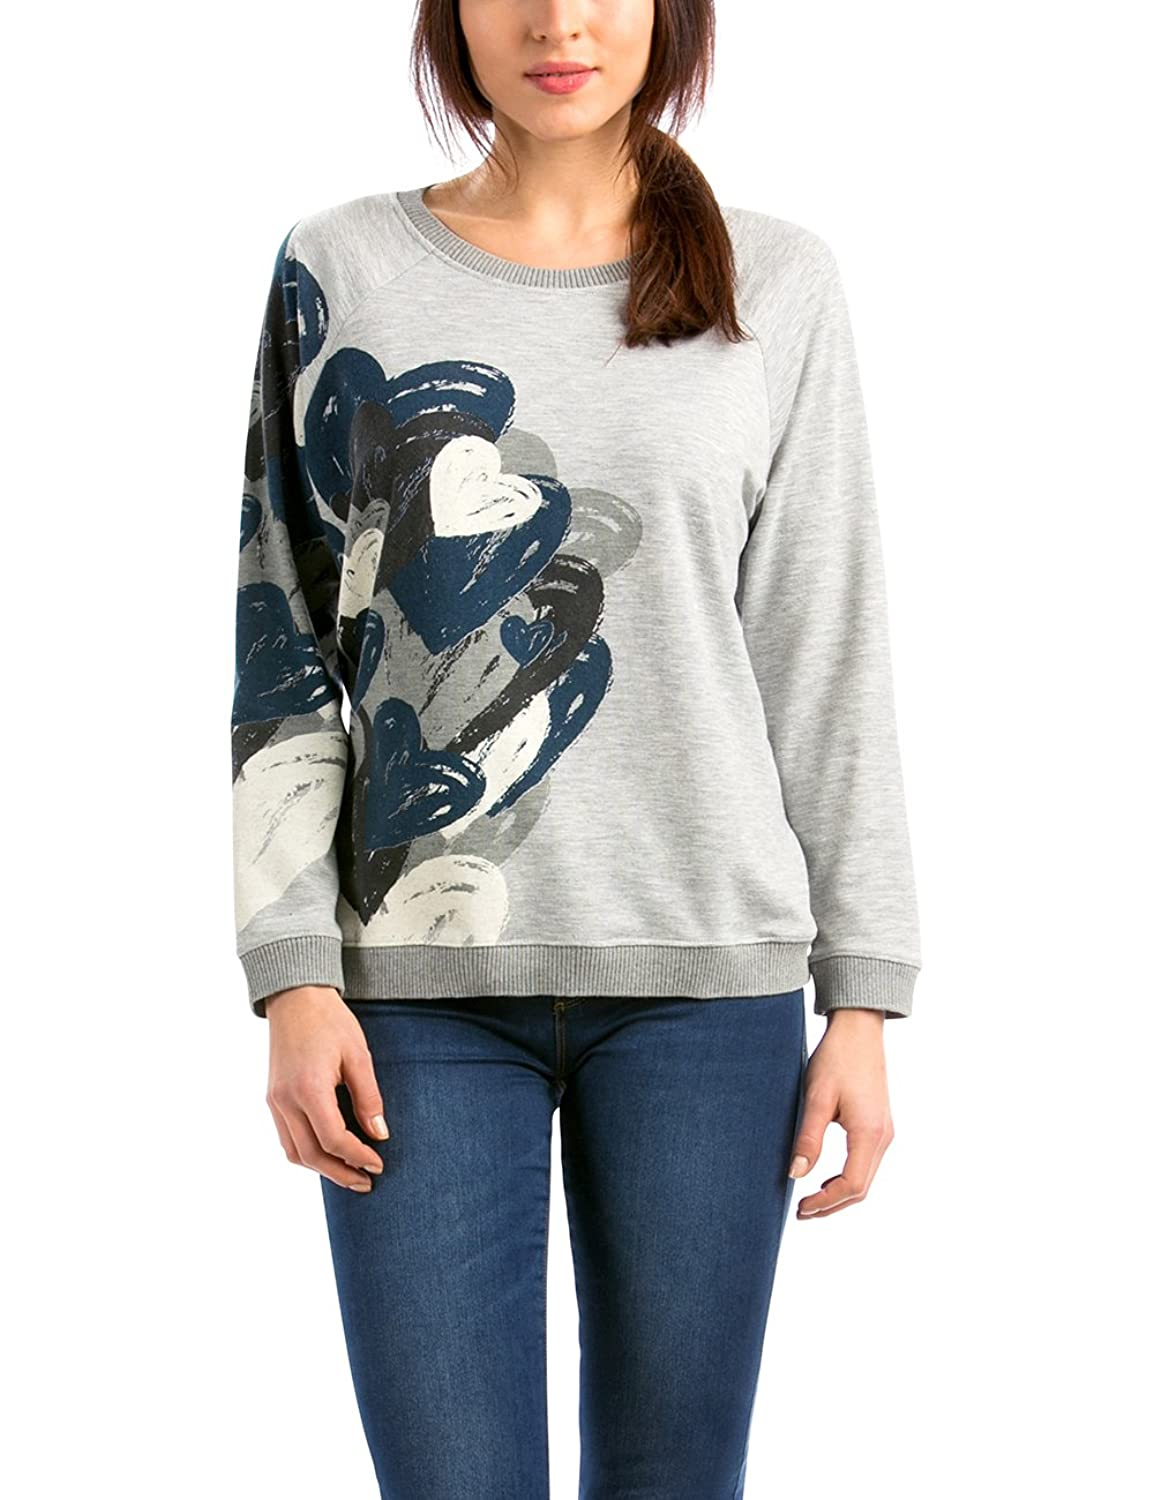 Desigual Women's Round Collar Long sleeve Sweatshirt